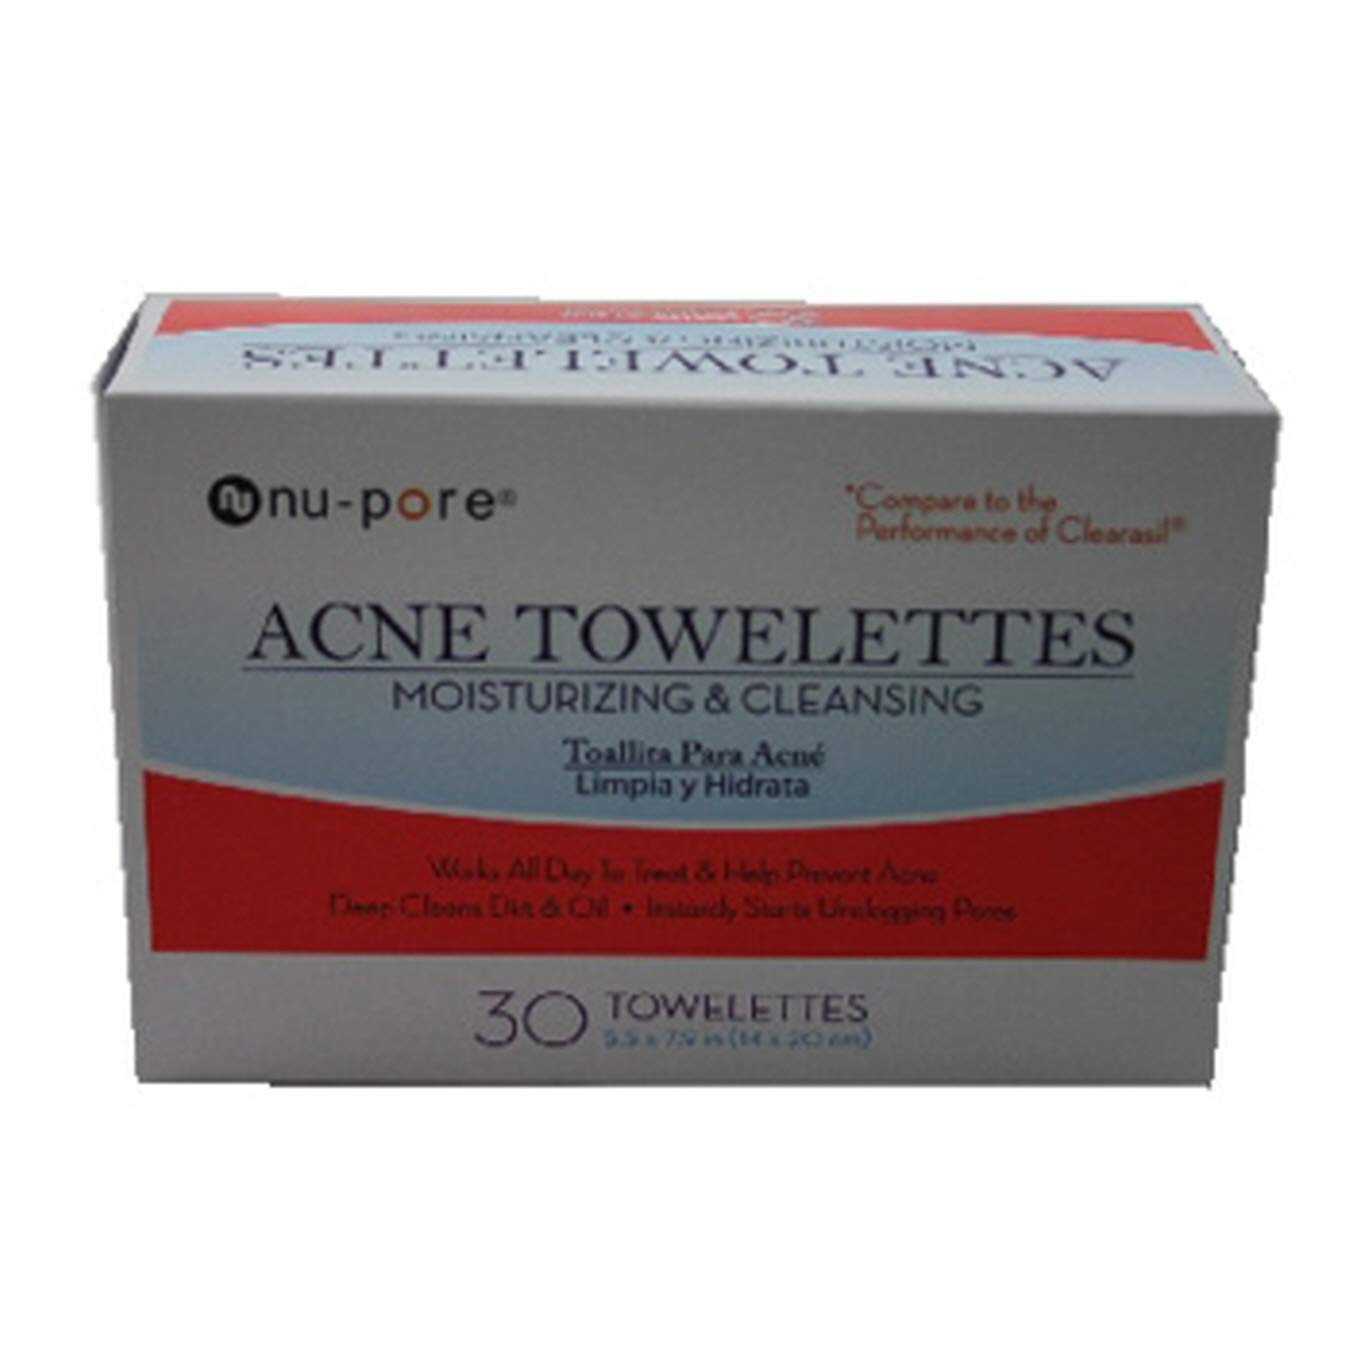 (Pack of 24, 720 Ct) NuPore Acne Towelettes Moisturizing & Cleansing